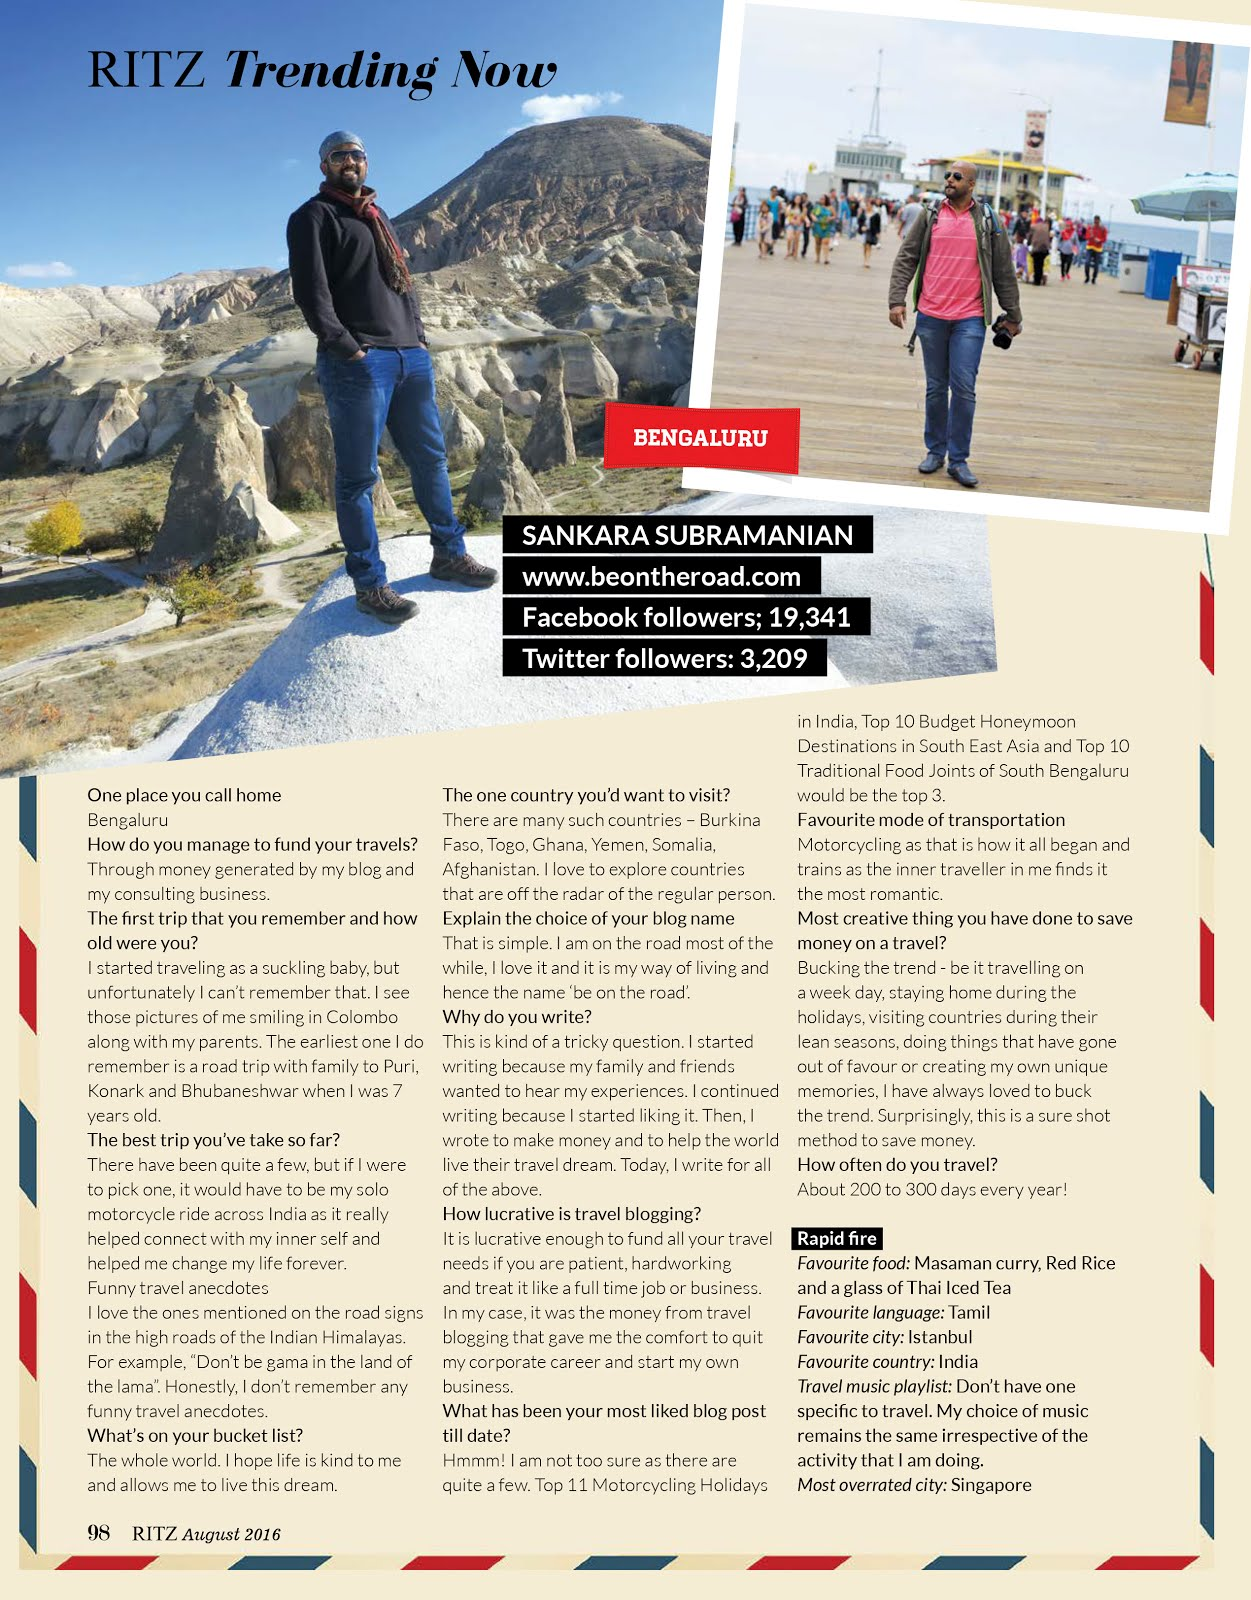 Ritz Magazine Features Sankara Subramanian C as South Indias Most Visible Travel Bloggers